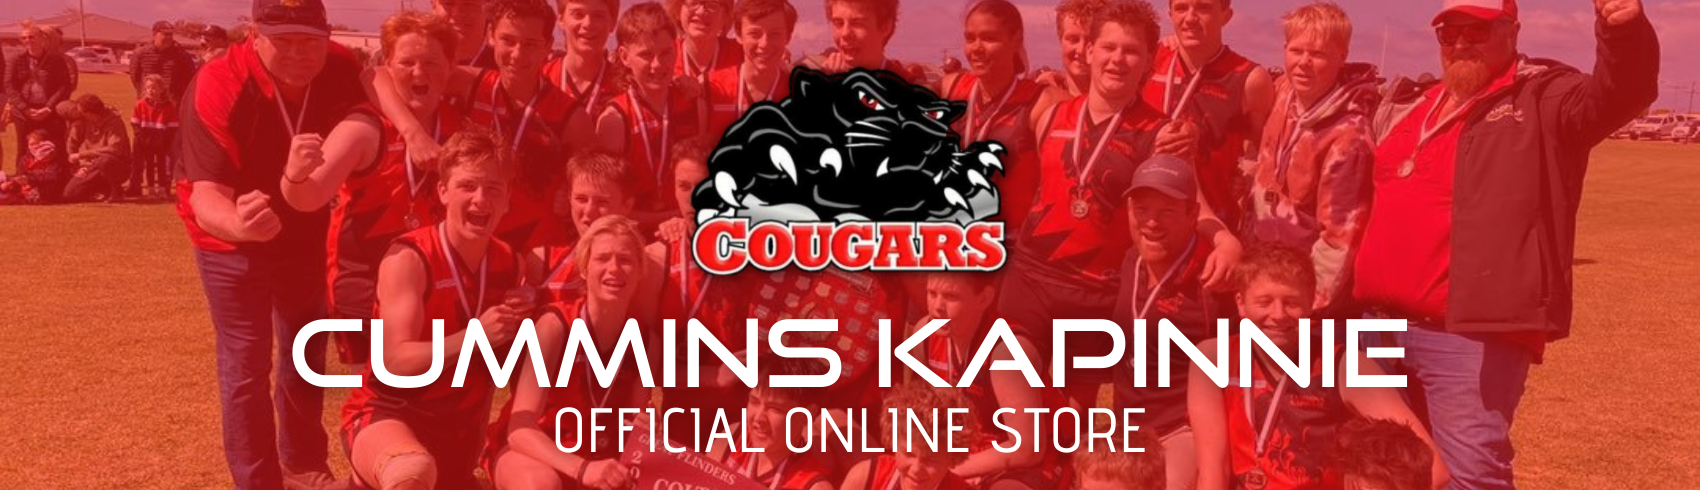 cougars-banner.png